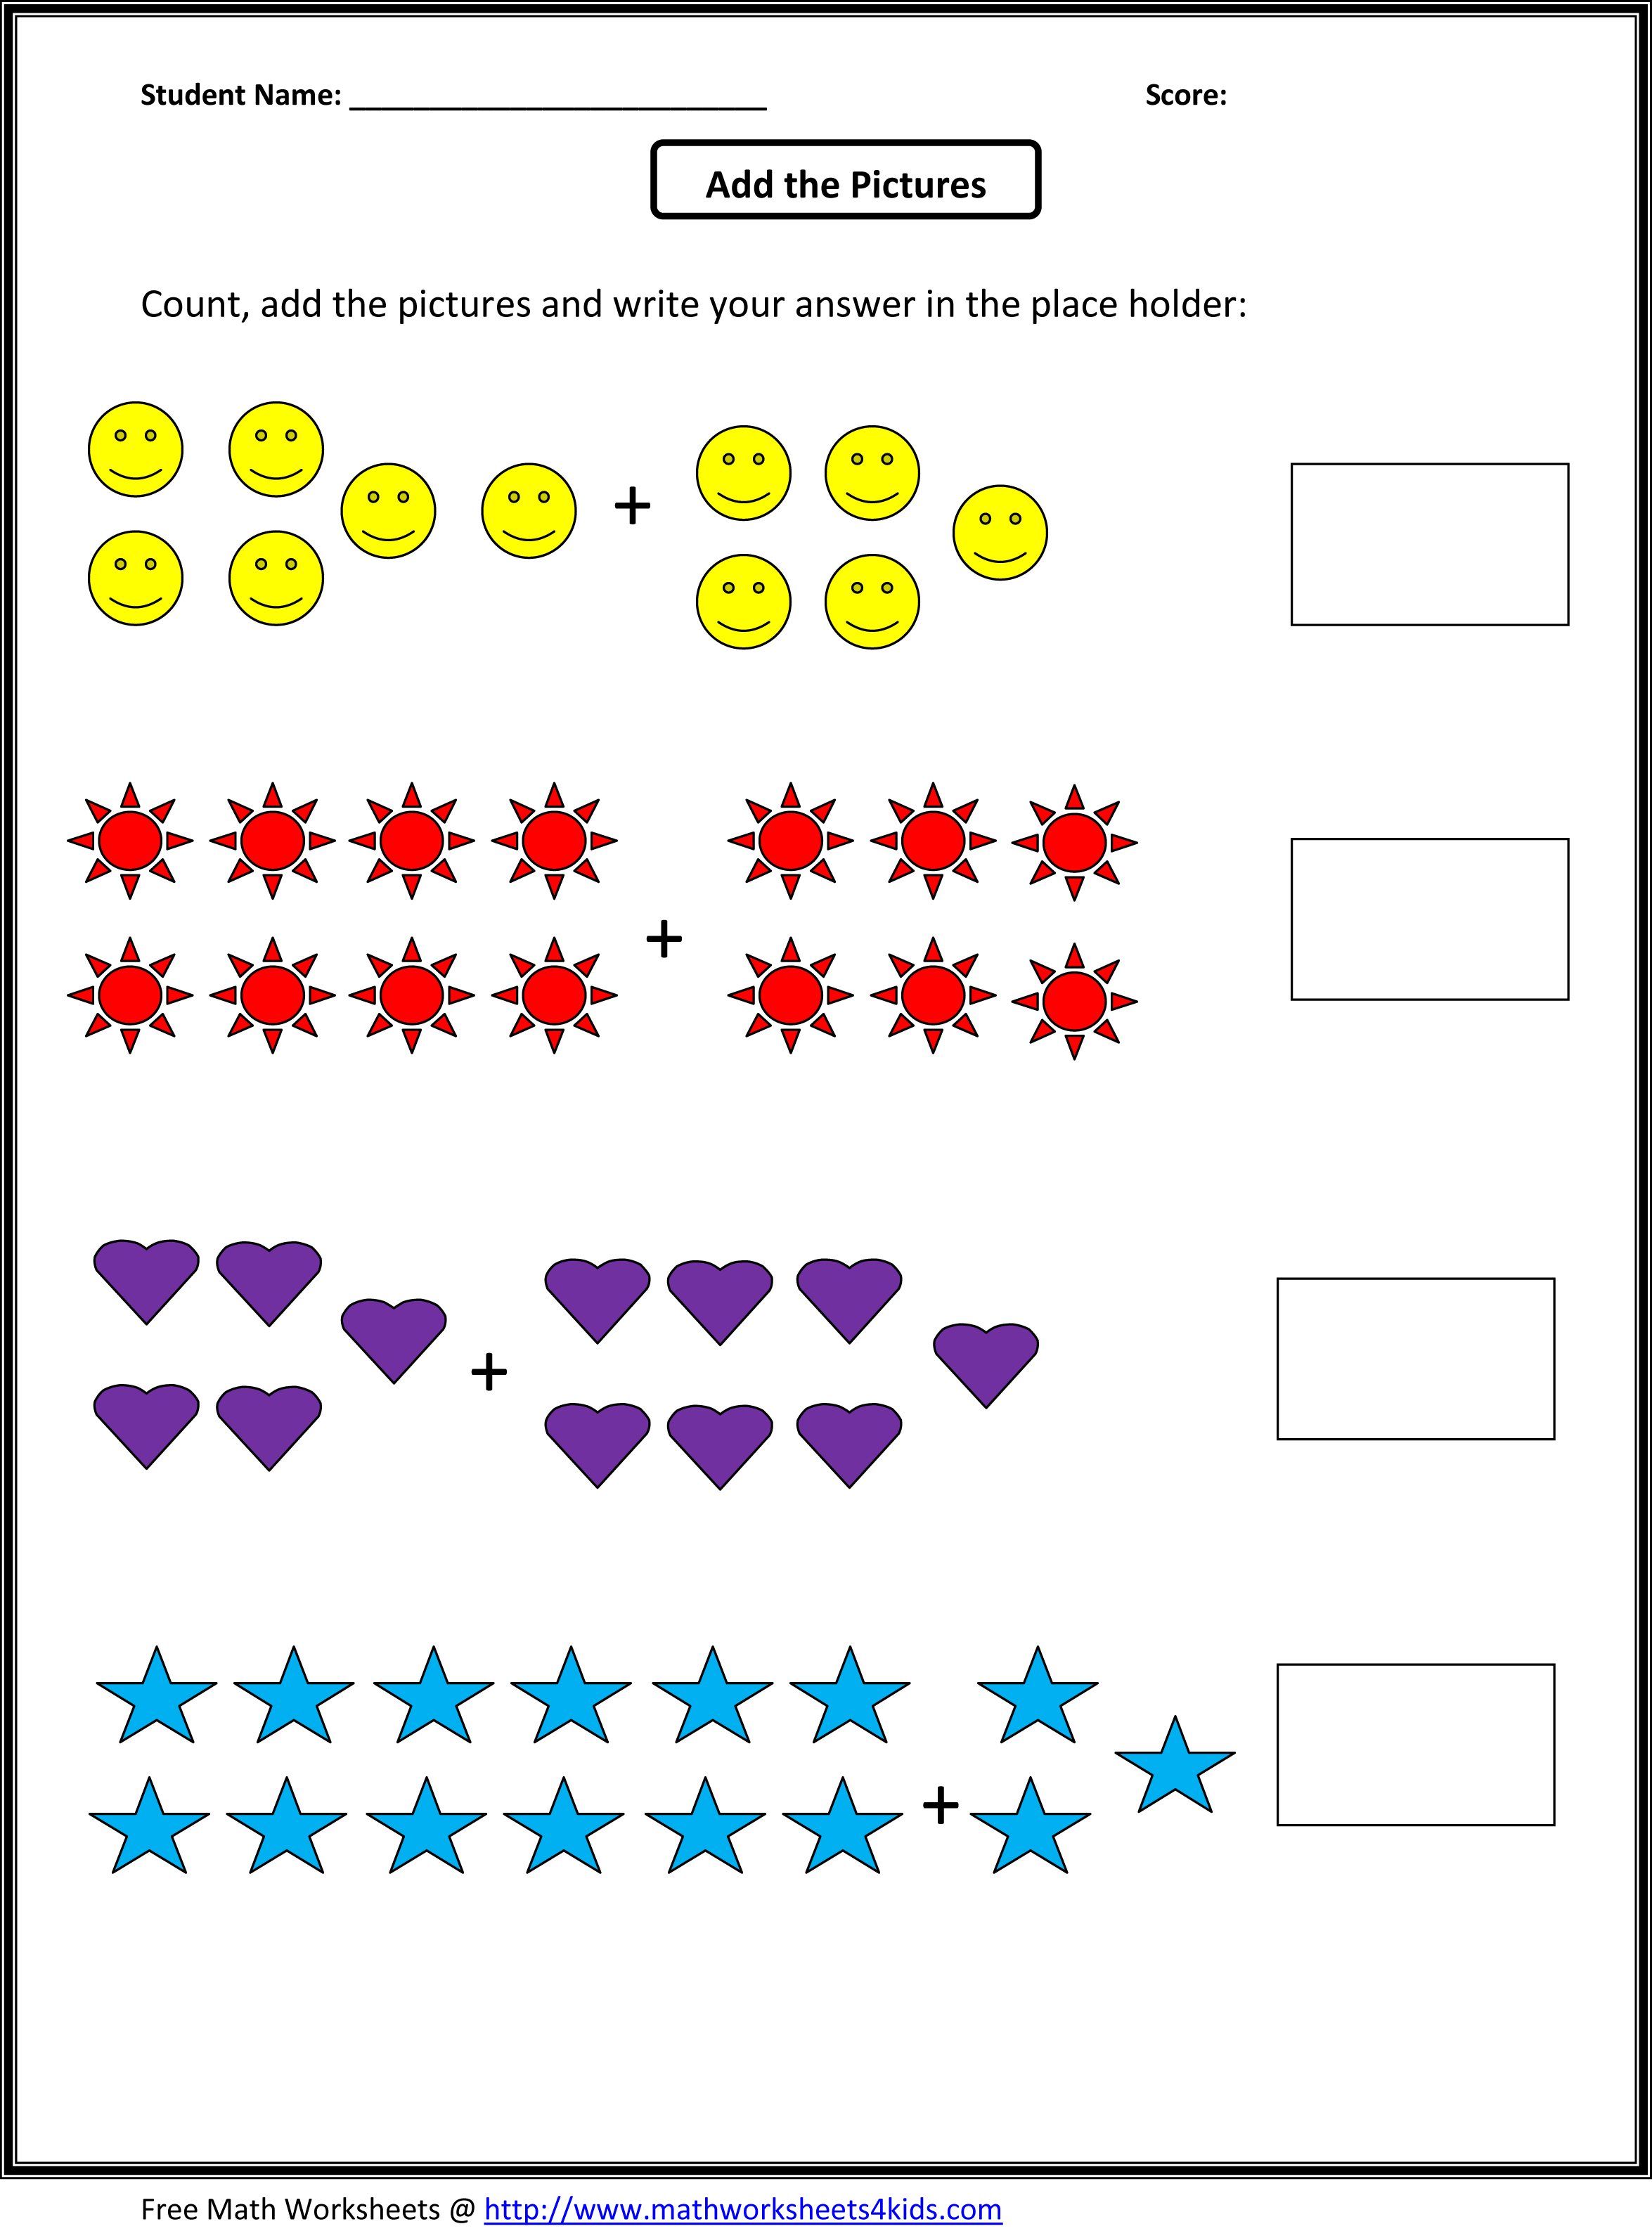 Weirdmailus  Sweet Grade  Maths Worksheet  Reocurent With Fair Math Worksheets For St Grade Free  Reocurent With Breathtaking Kindergarten Homeschool Worksheets Also Longitude Worksheet In Addition Line Graph Worksheets Middle School And Printable Verb Worksheets As Well As Daily Language Review Grade  Worksheets Additionally Comprehension Worksheets For Middle School From Reocurentcom With Weirdmailus  Fair Grade  Maths Worksheet  Reocurent With Breathtaking Math Worksheets For St Grade Free  Reocurent And Sweet Kindergarten Homeschool Worksheets Also Longitude Worksheet In Addition Line Graph Worksheets Middle School From Reocurentcom